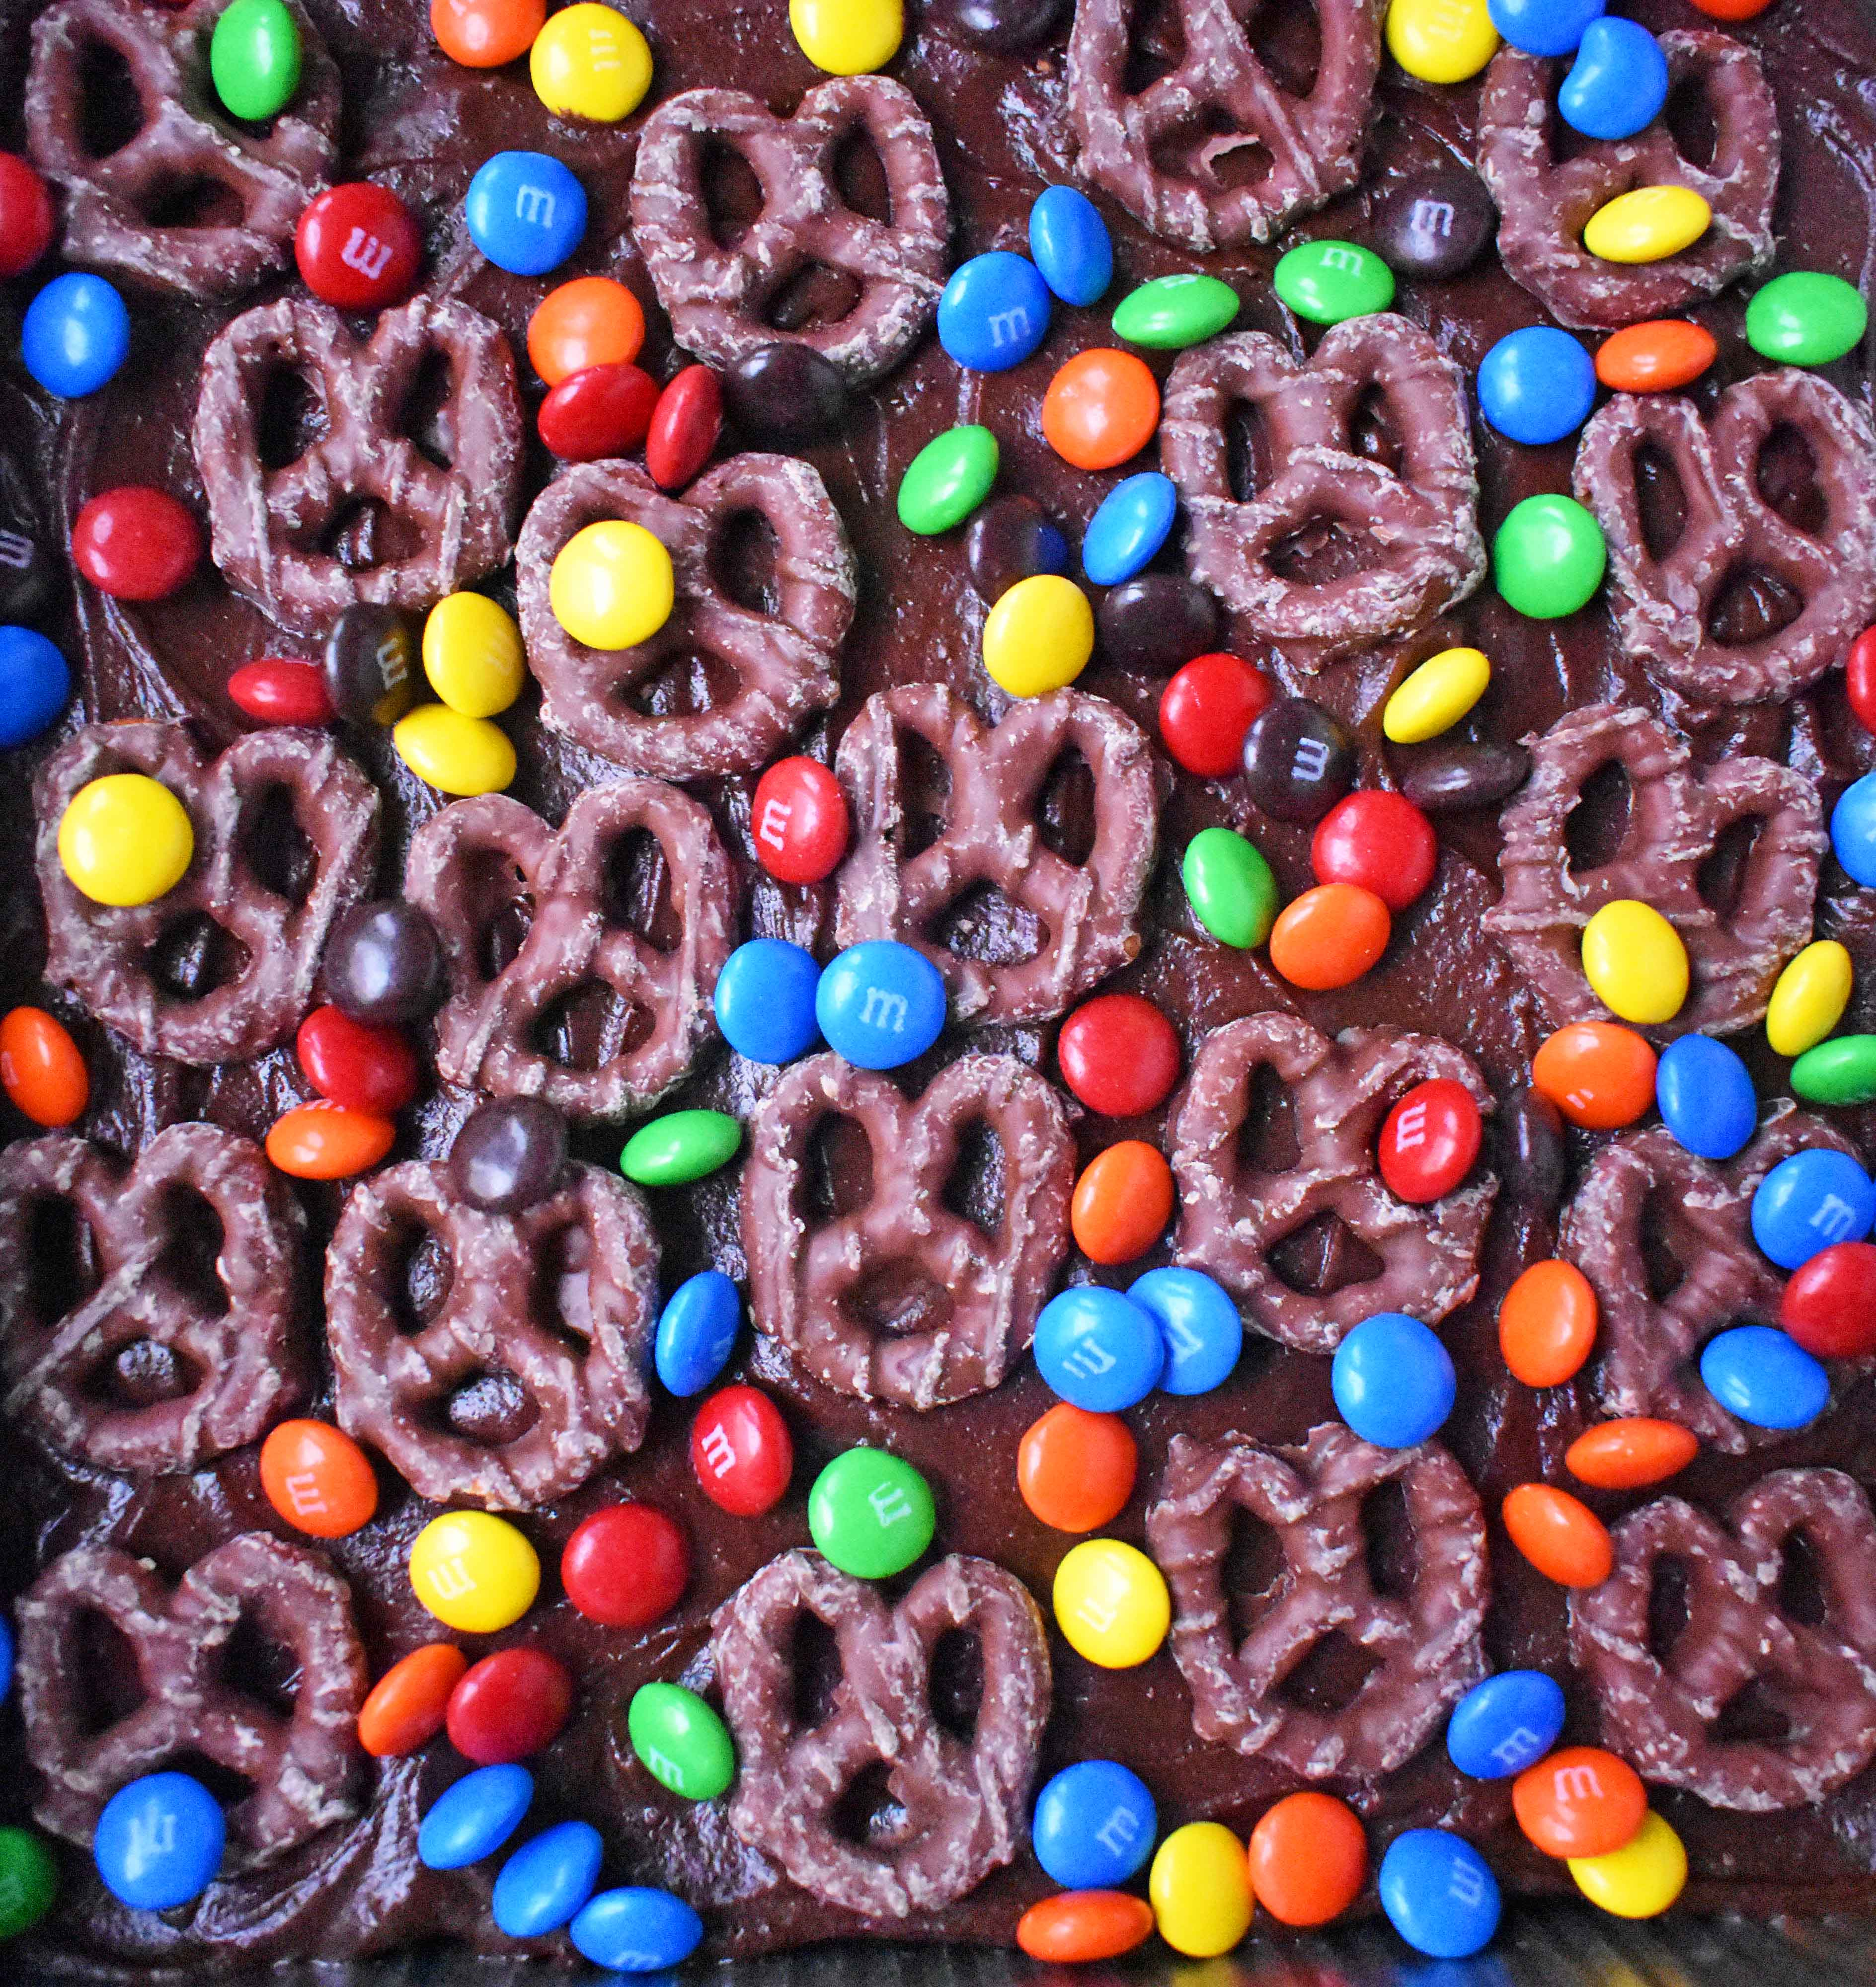 Super Bowl Chocolate Covered Pretzel Brownies. Chewy rich chocolate chunk brownies topped with creamy frosting, chocolate covered pretzels, and M & M's. www.modernhoney.com